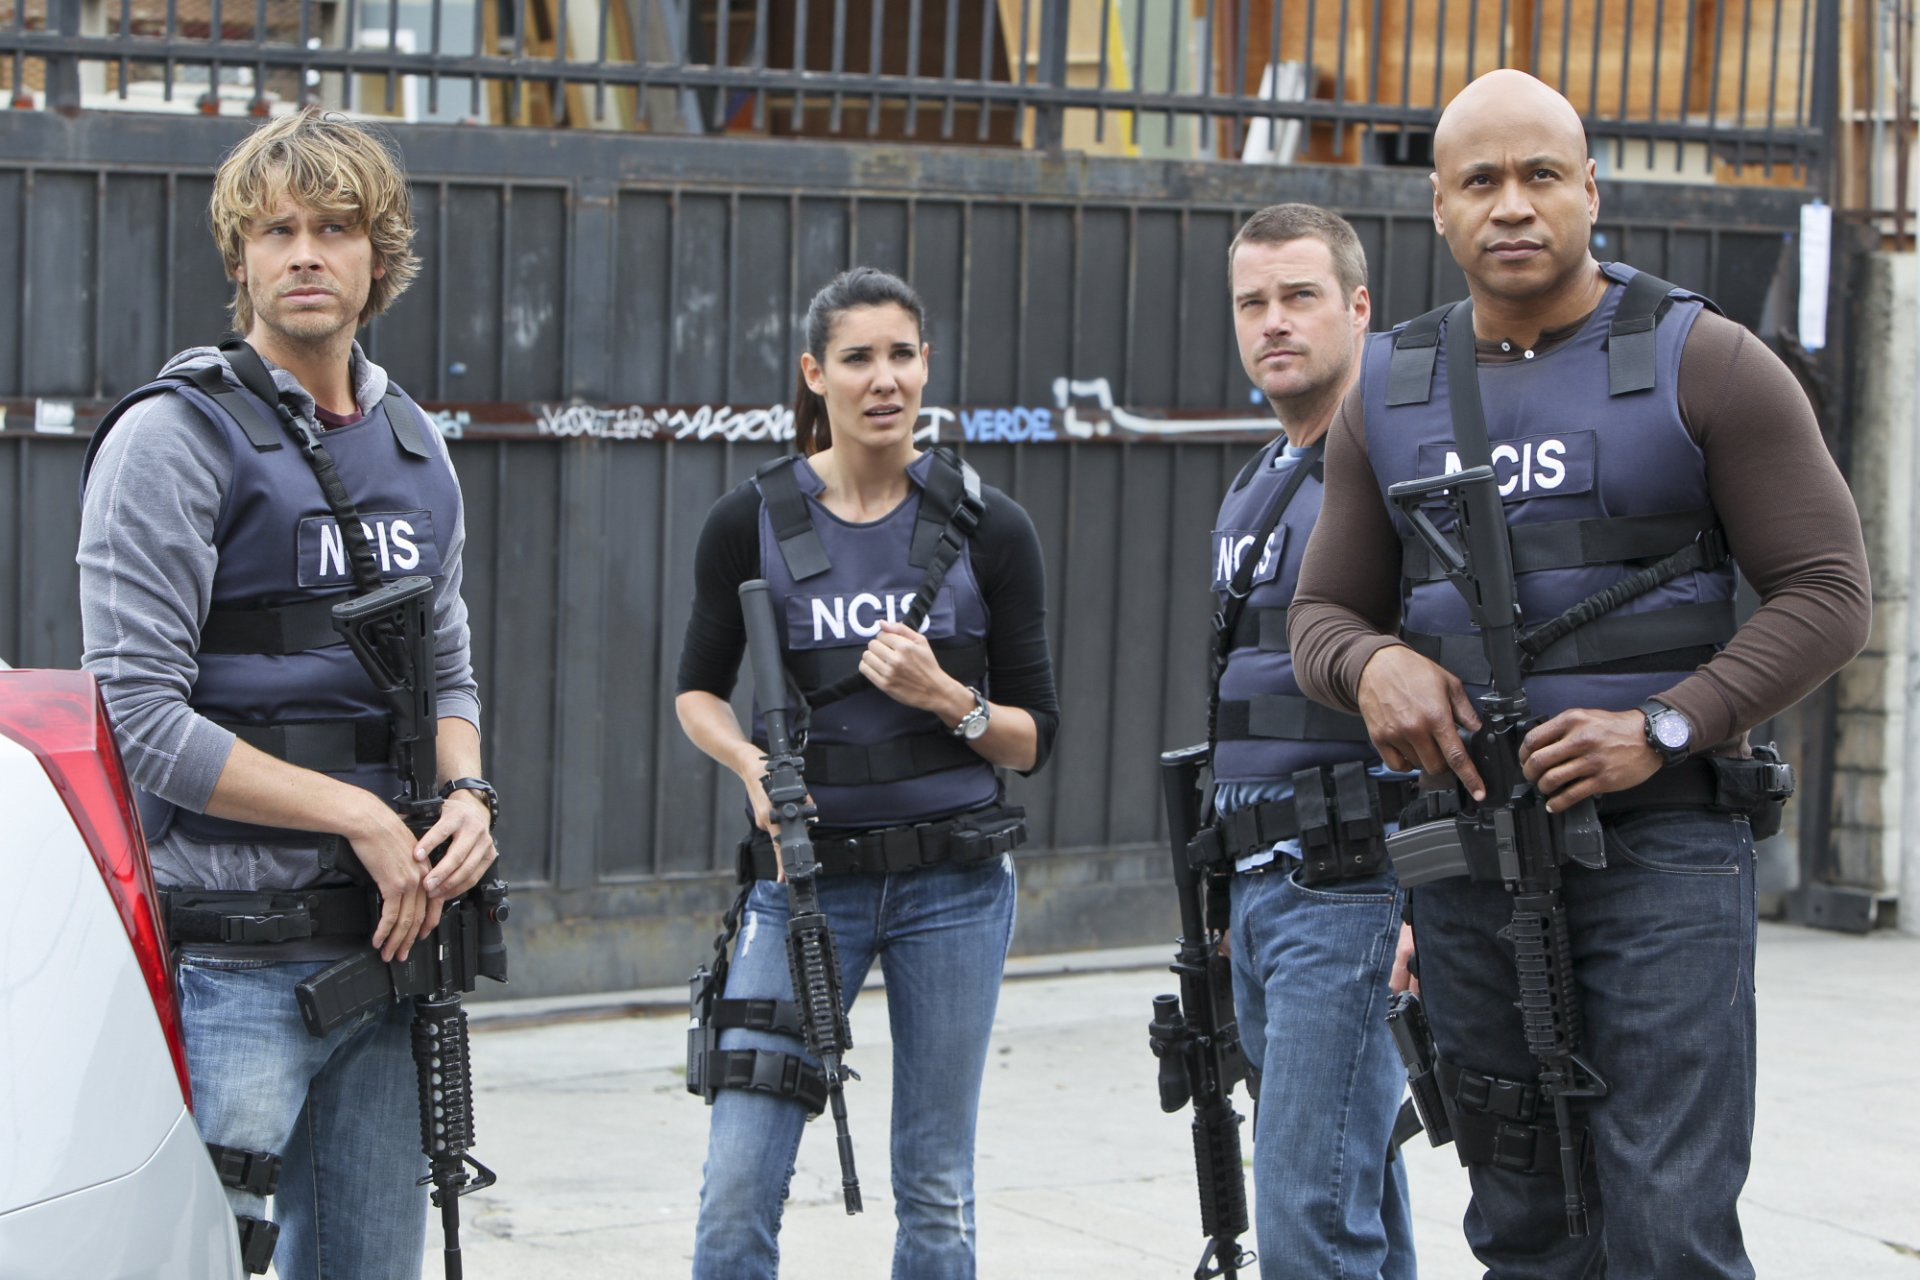 Ncis La: NCIS: Los Angeles Full HD Wallpaper And Background Image